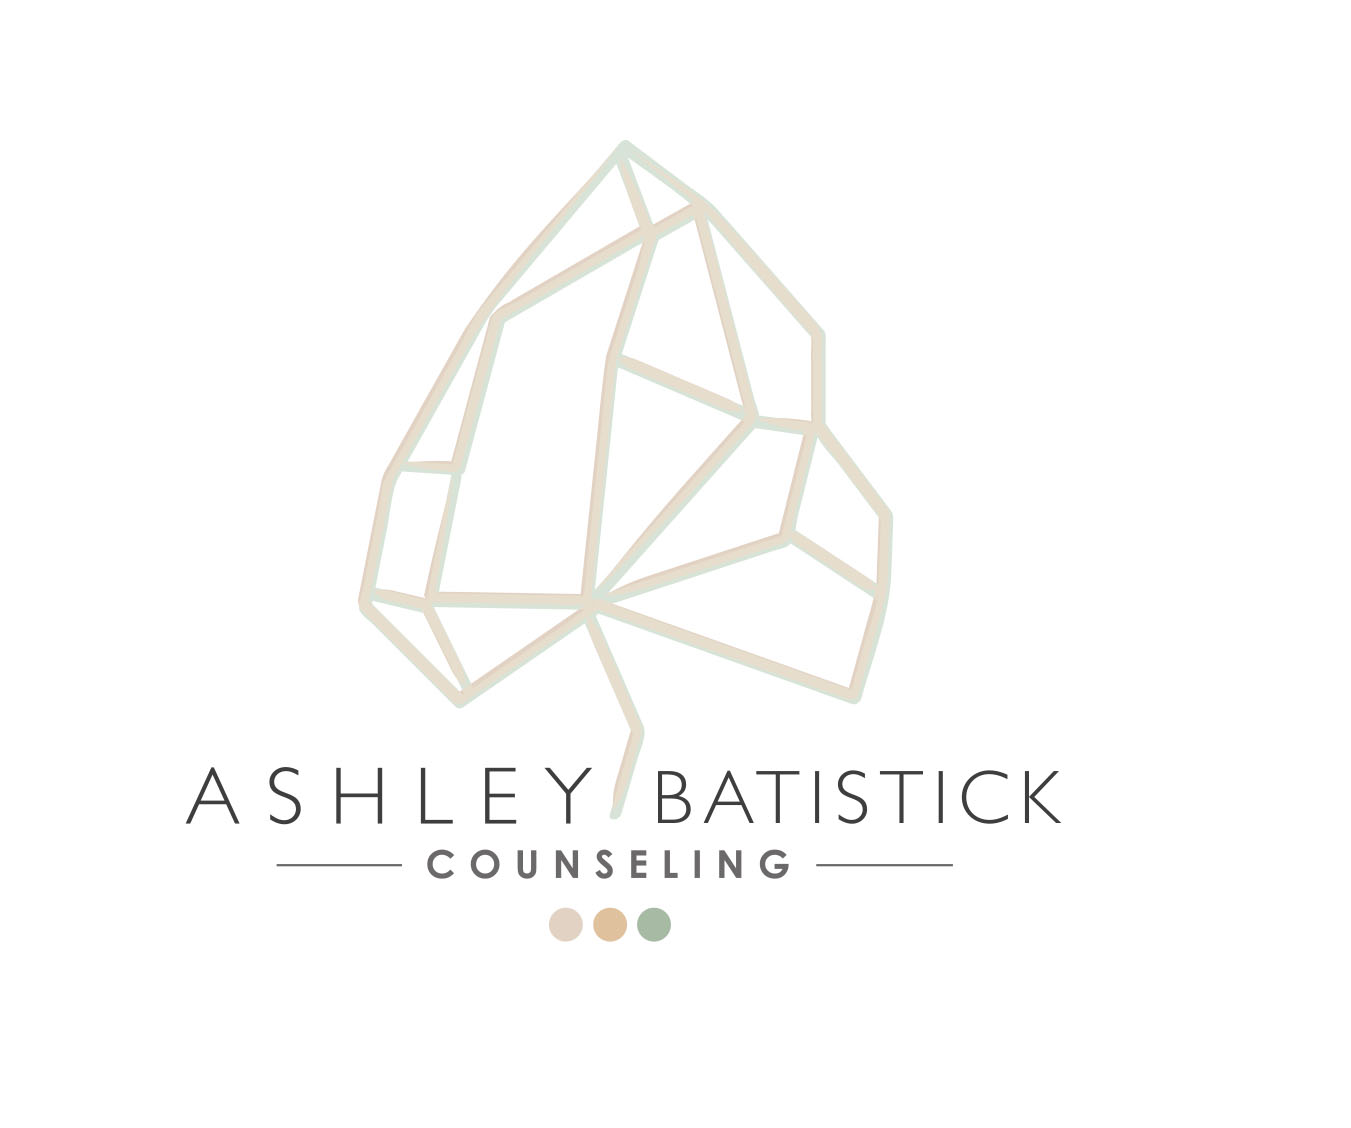 Ashley Batistick Counseling